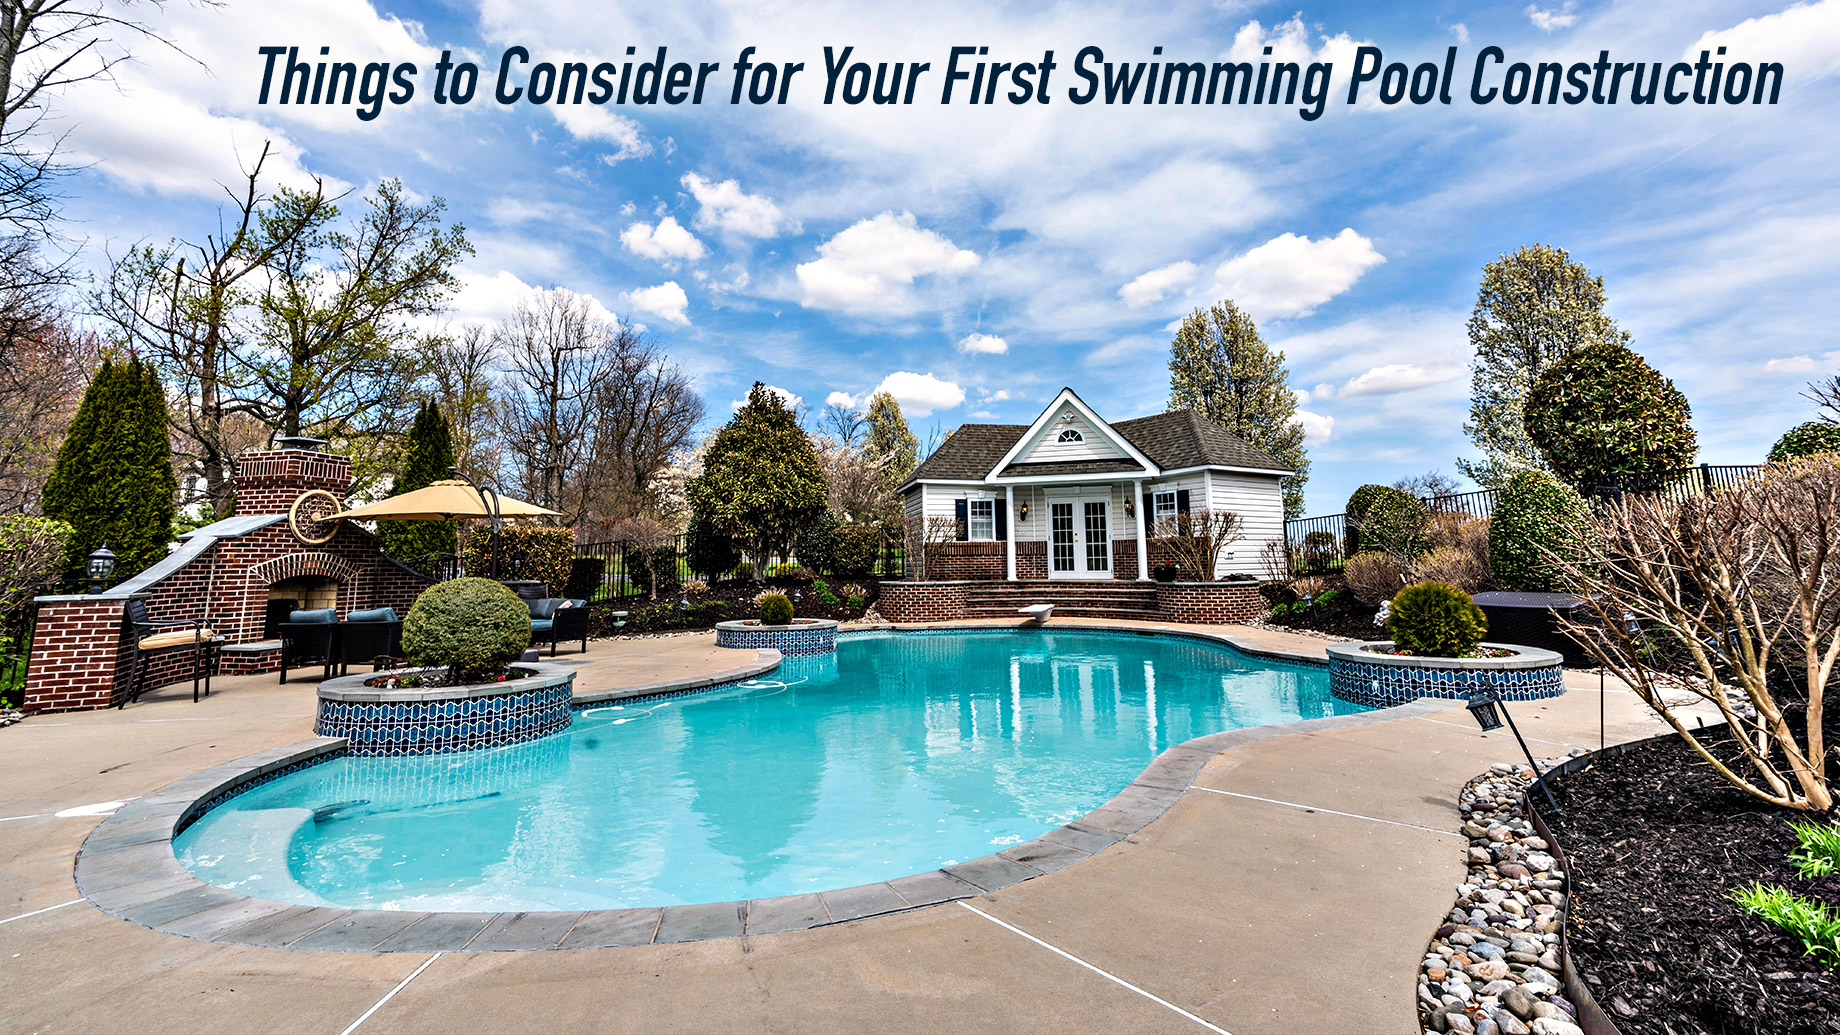 Things to Consider for Your First Swimming Pool Construction